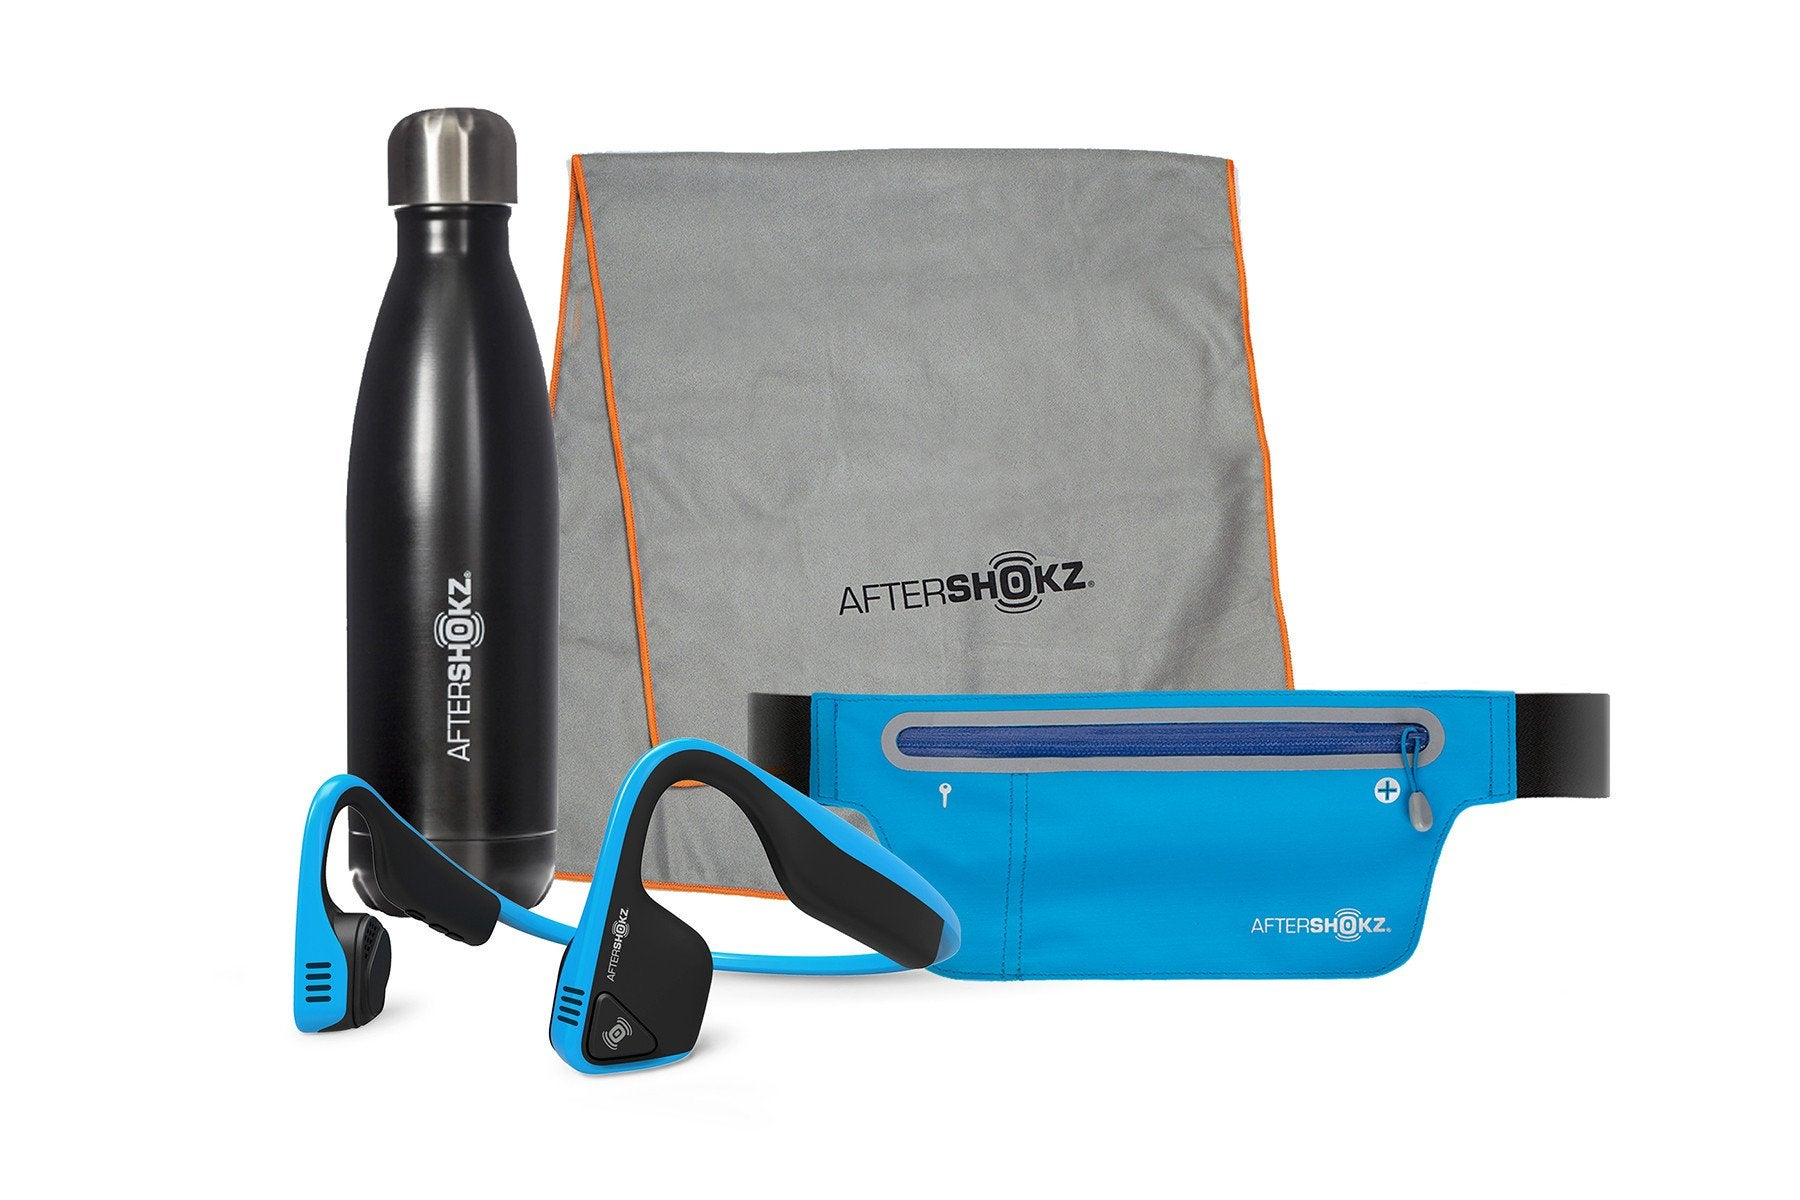 active camping gear list: aftershokz gear